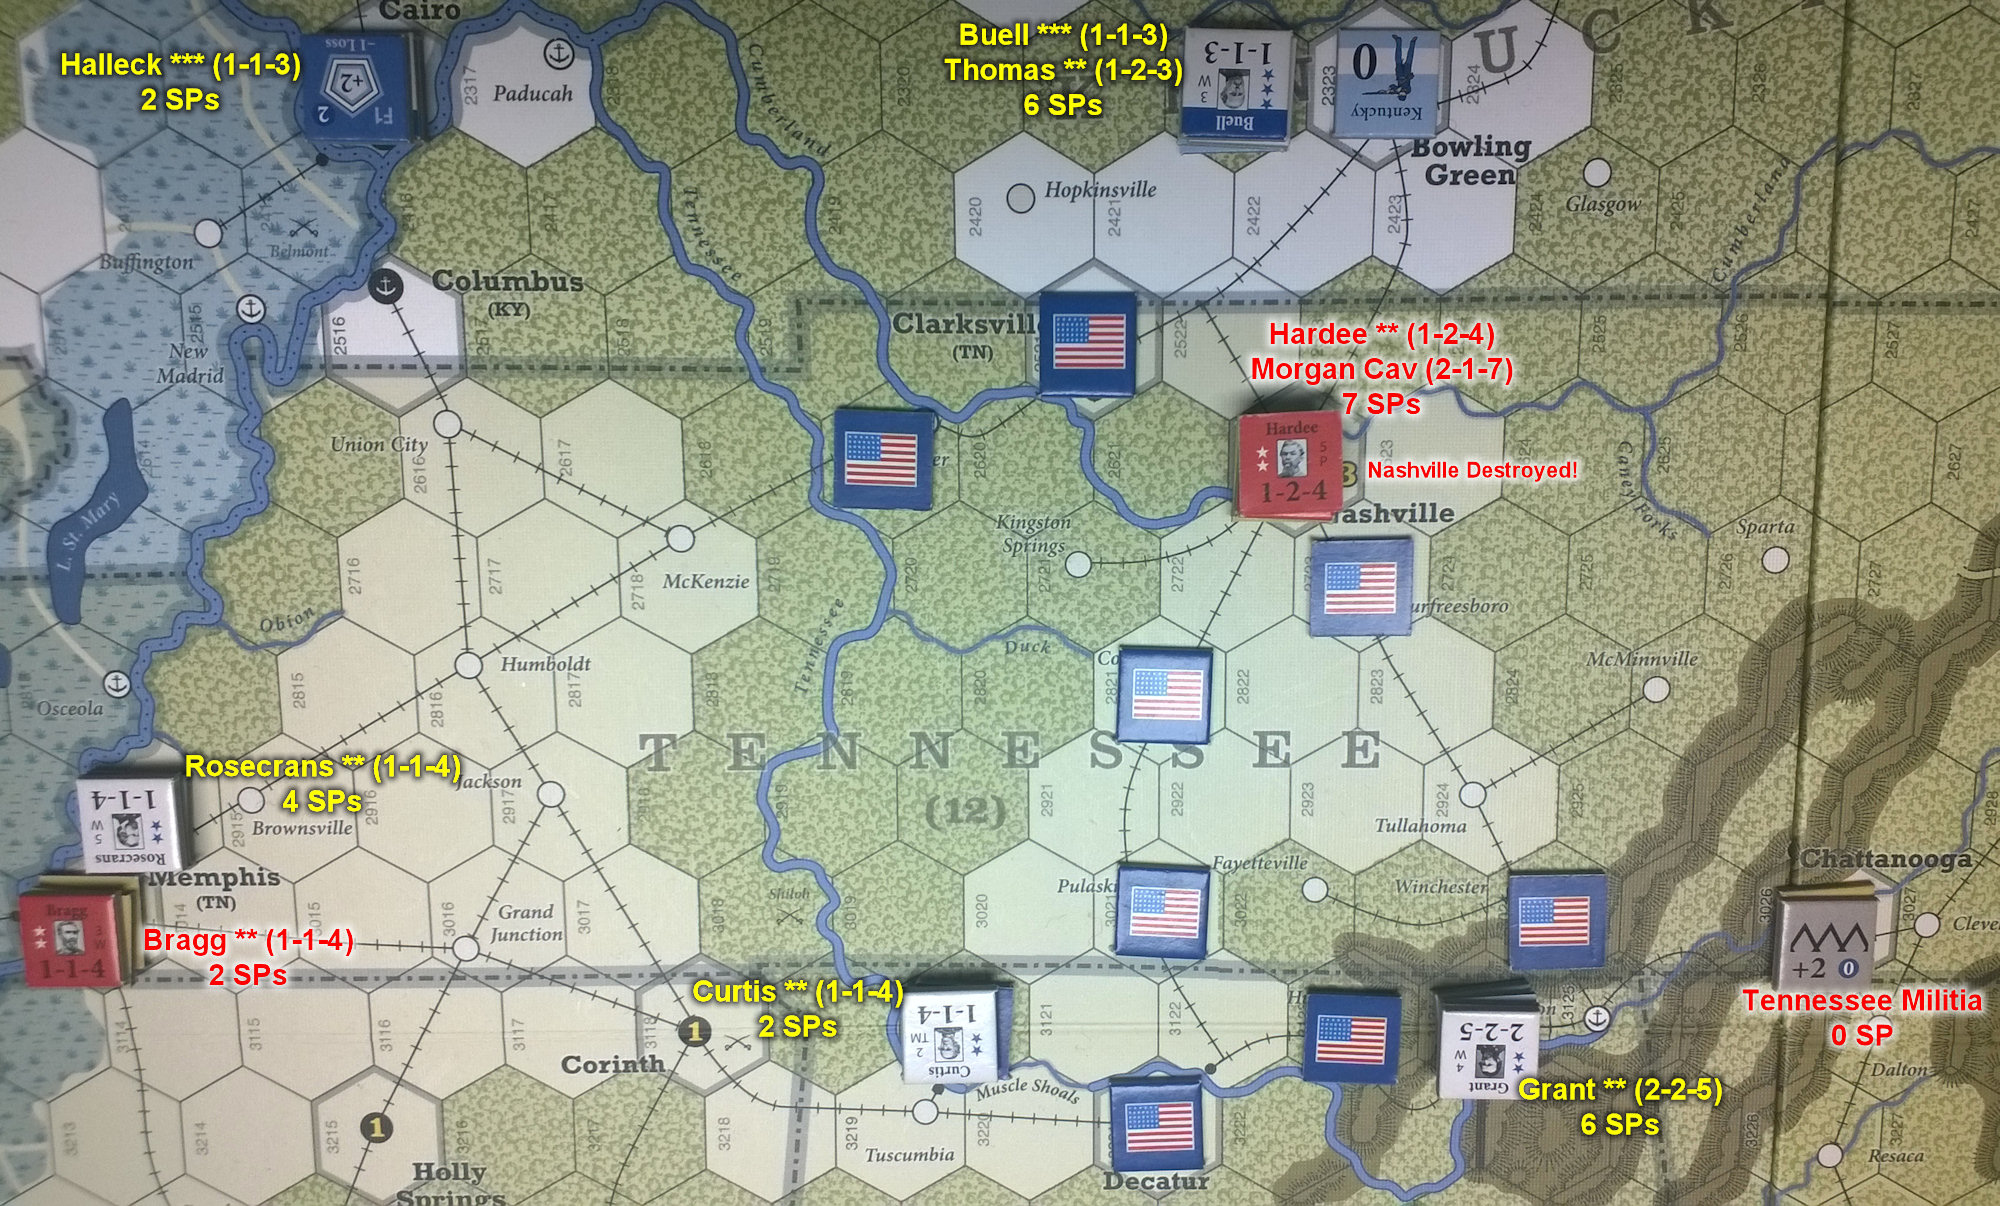 The U.S. Civil War: Western Theater at the end of Game Turn 5